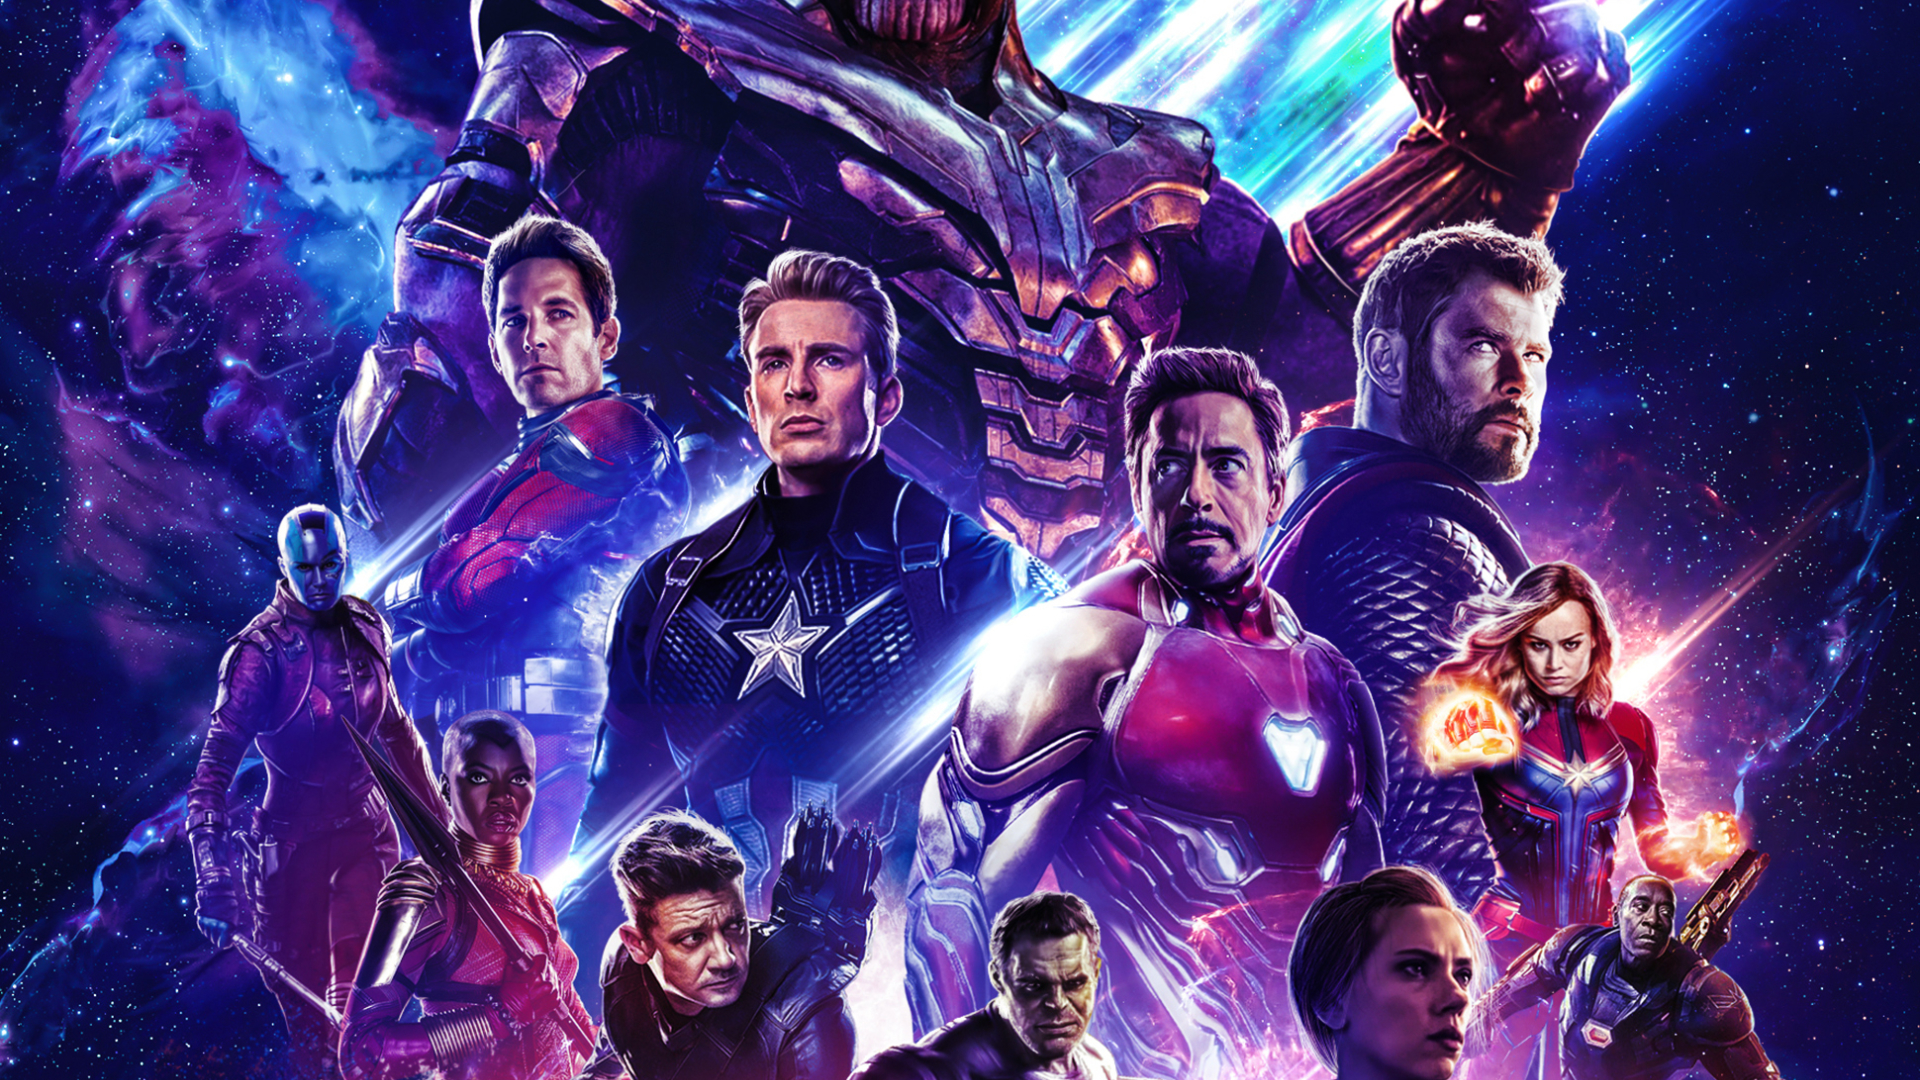 Download Avengers Endgame Wallpaper Hd 1080p For Pc Cikimmcom